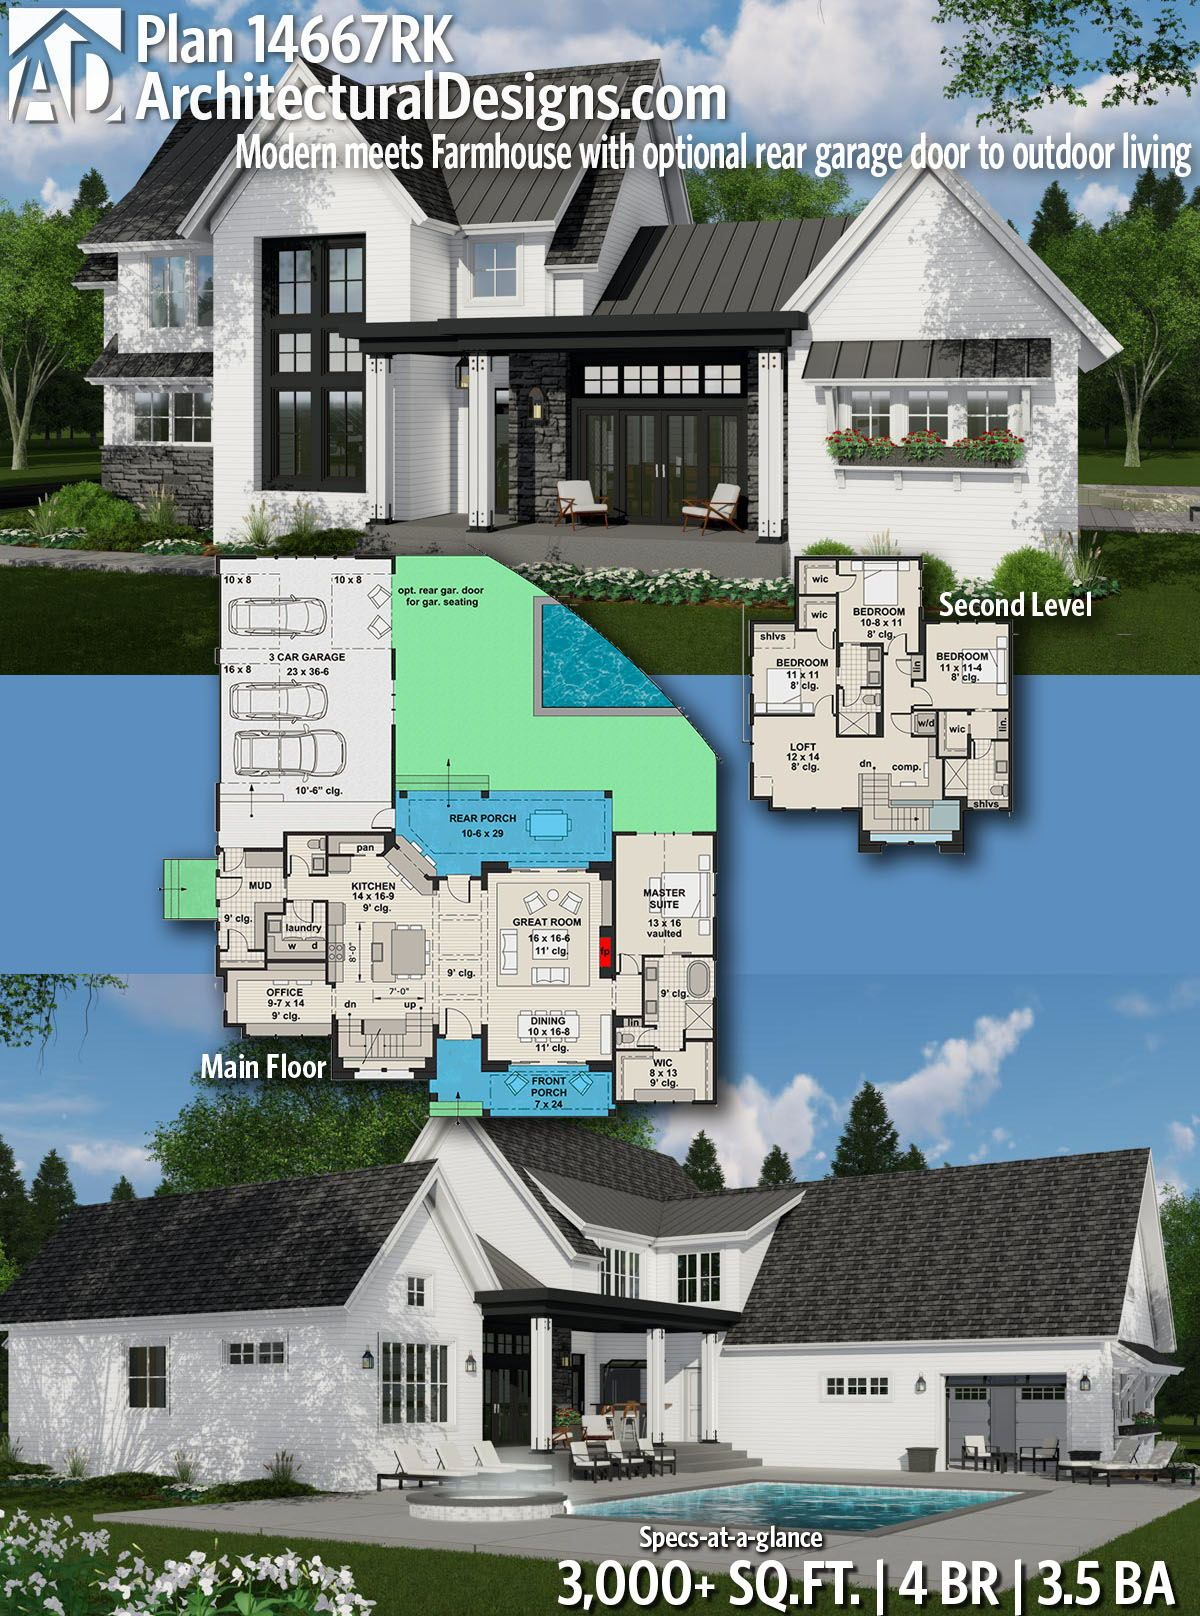 Plan 14667rk Modern Meets Farmhouse With Optional Rear Garage Door To Outdoor Living Modern Farmhouse Plans Modern House Plans Farmhouse Plans